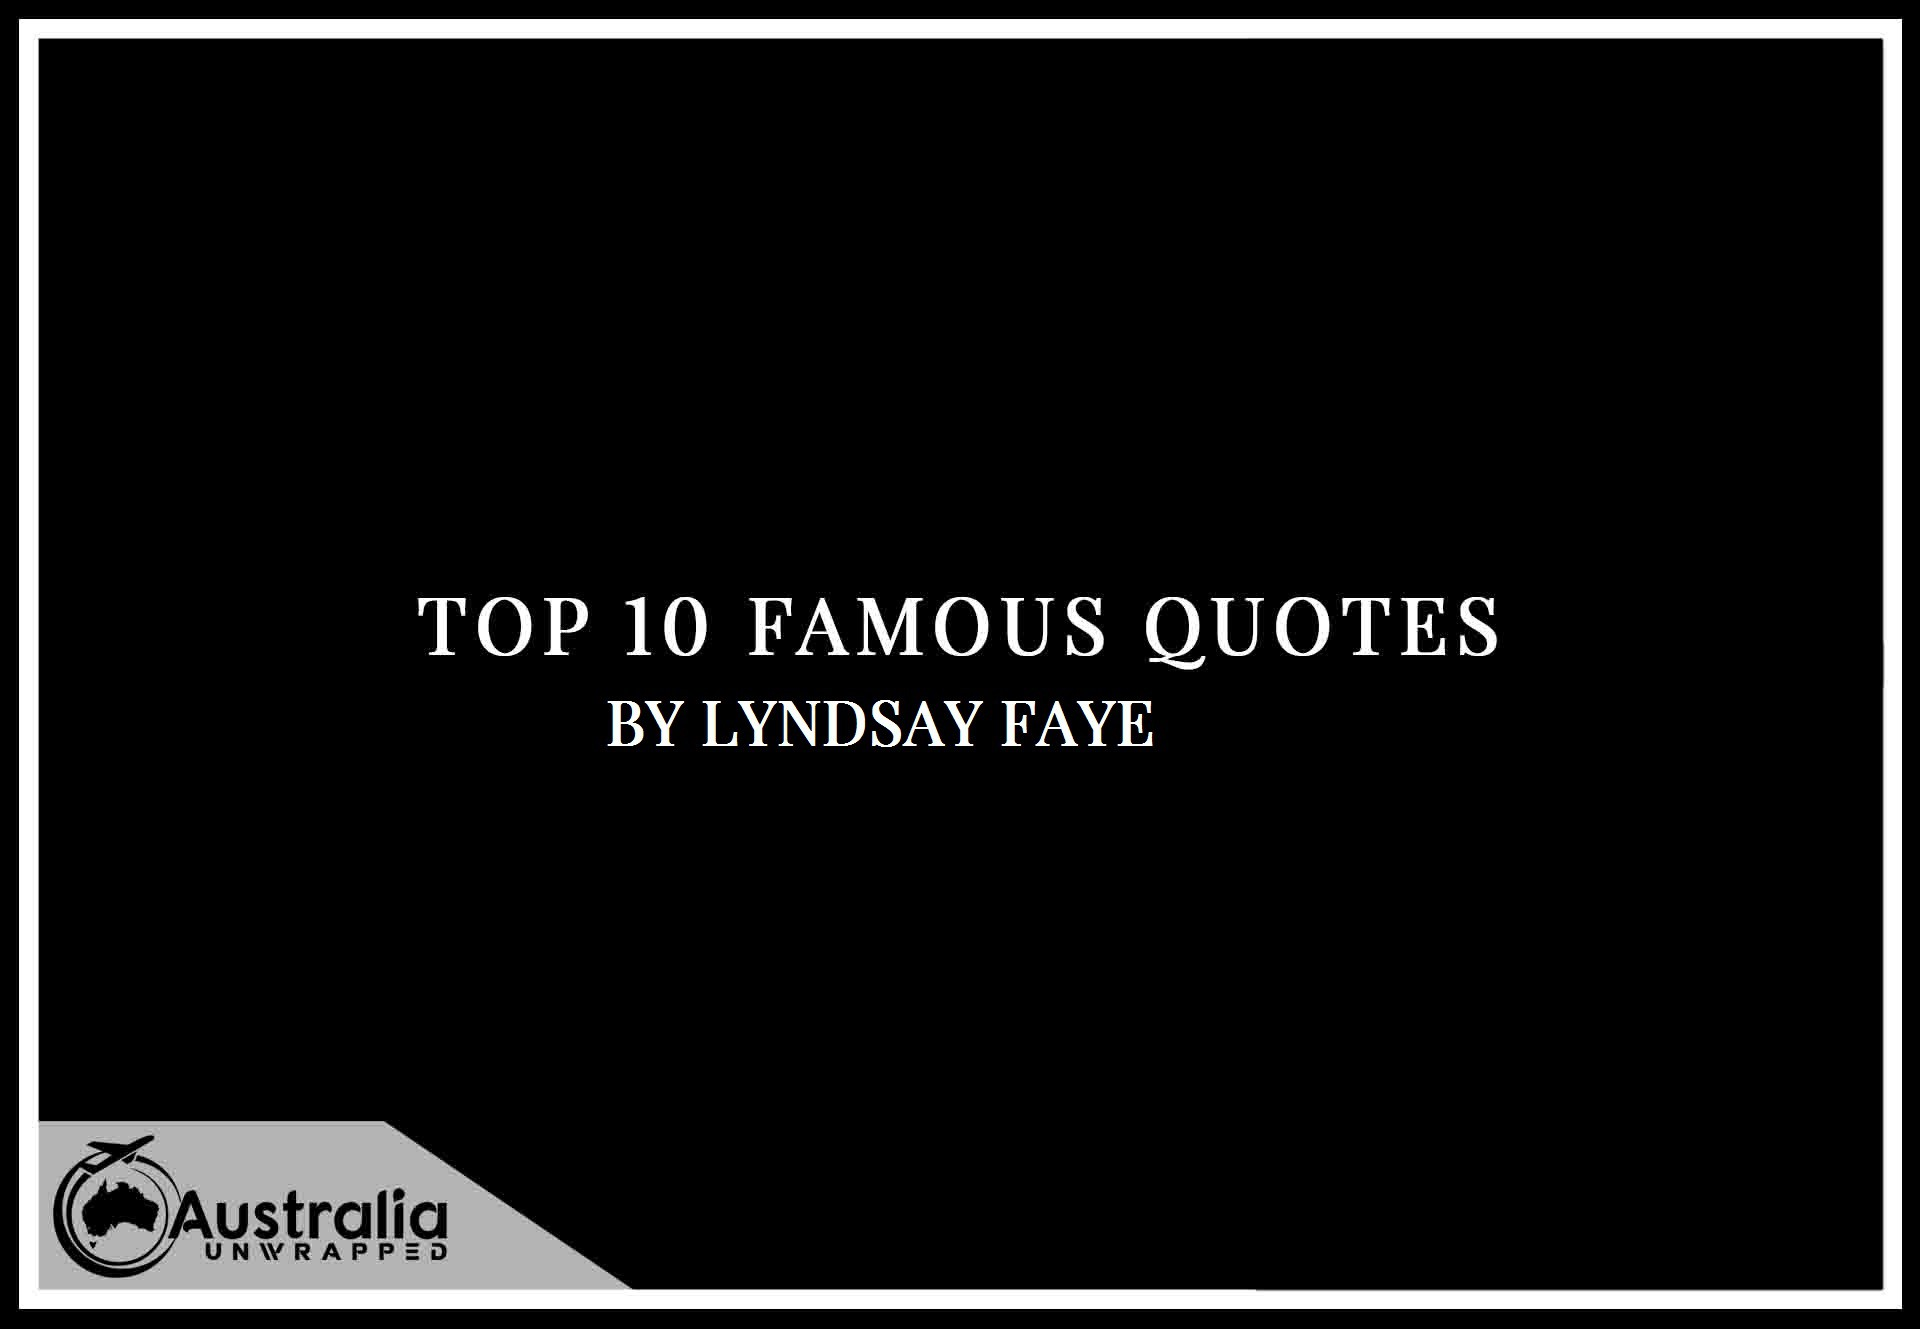 Lyndsay Faye's Top 10 Popular and Famous Quotes